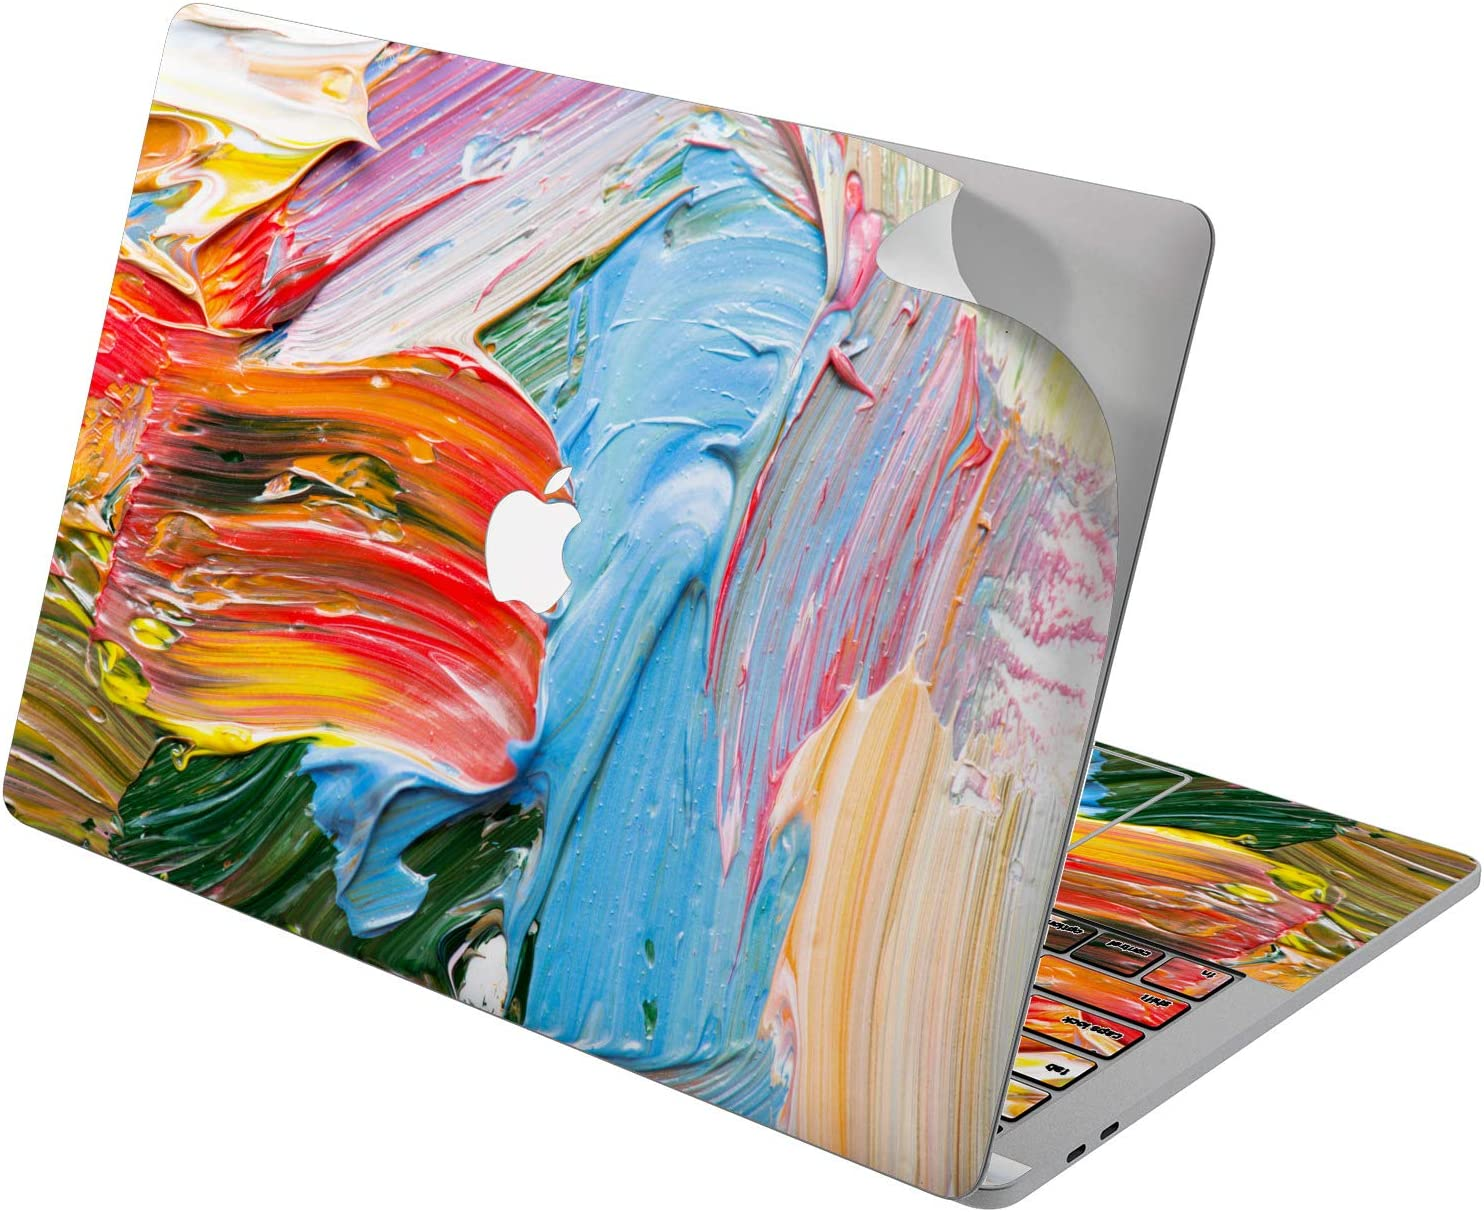 "Cavka Vinyl Decal Skin for Apple MacBook Pro 13"" 2019 15"" 2018 Air 13"" 2020 Retina 2015 Mac 11"" Mac 12"" Art Laptop Protective Design New Cover Print Sticker Paint Colorful Bright Funky Streaks Smears"